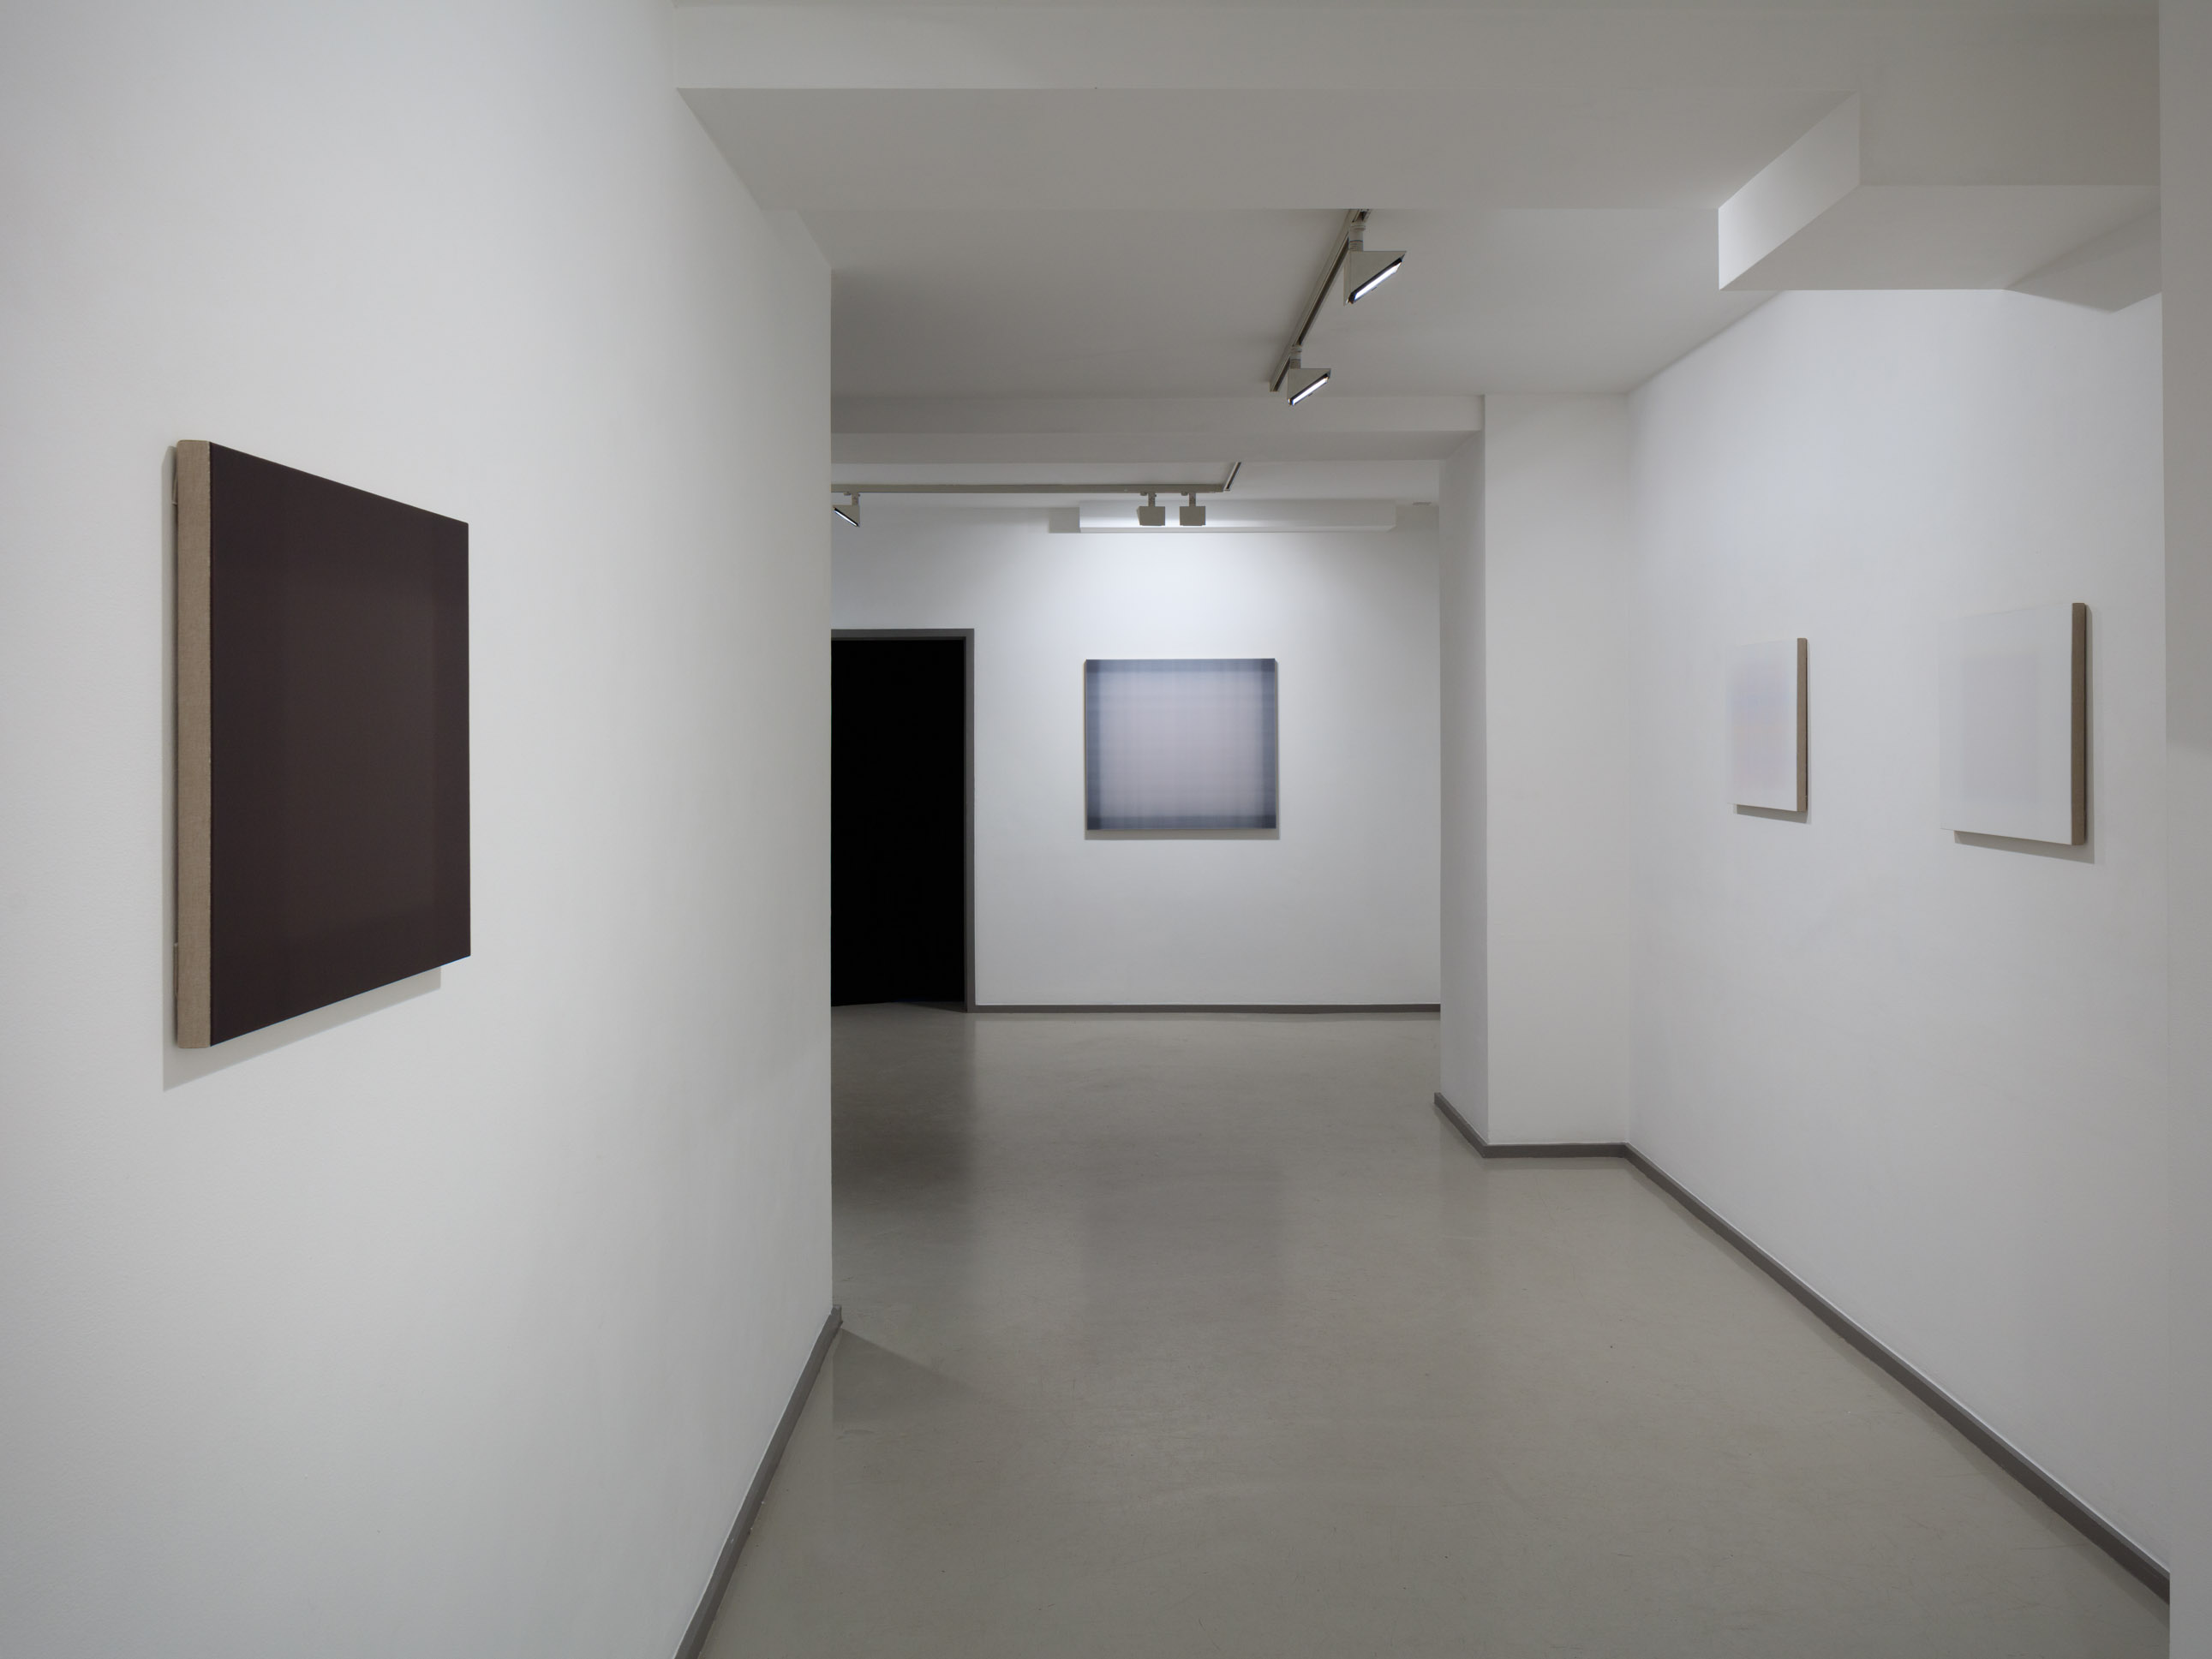 Installation view, Tom Chamberlain 'Falling Short' at Laure Genillard, courtesy of Laure Genillard gallery, Image credits: Plastiques